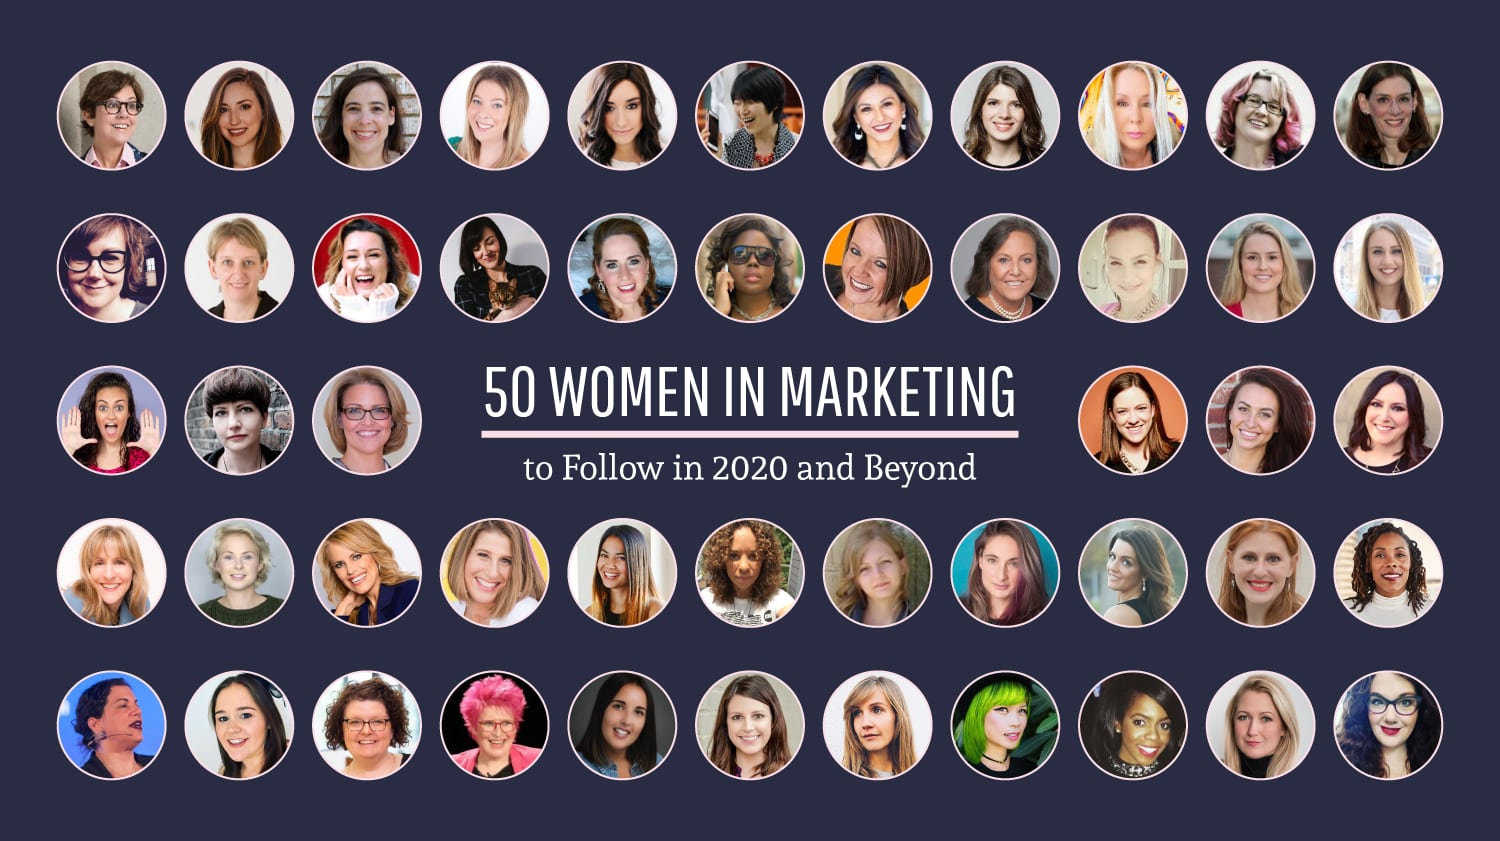 50 women in marketing to follow